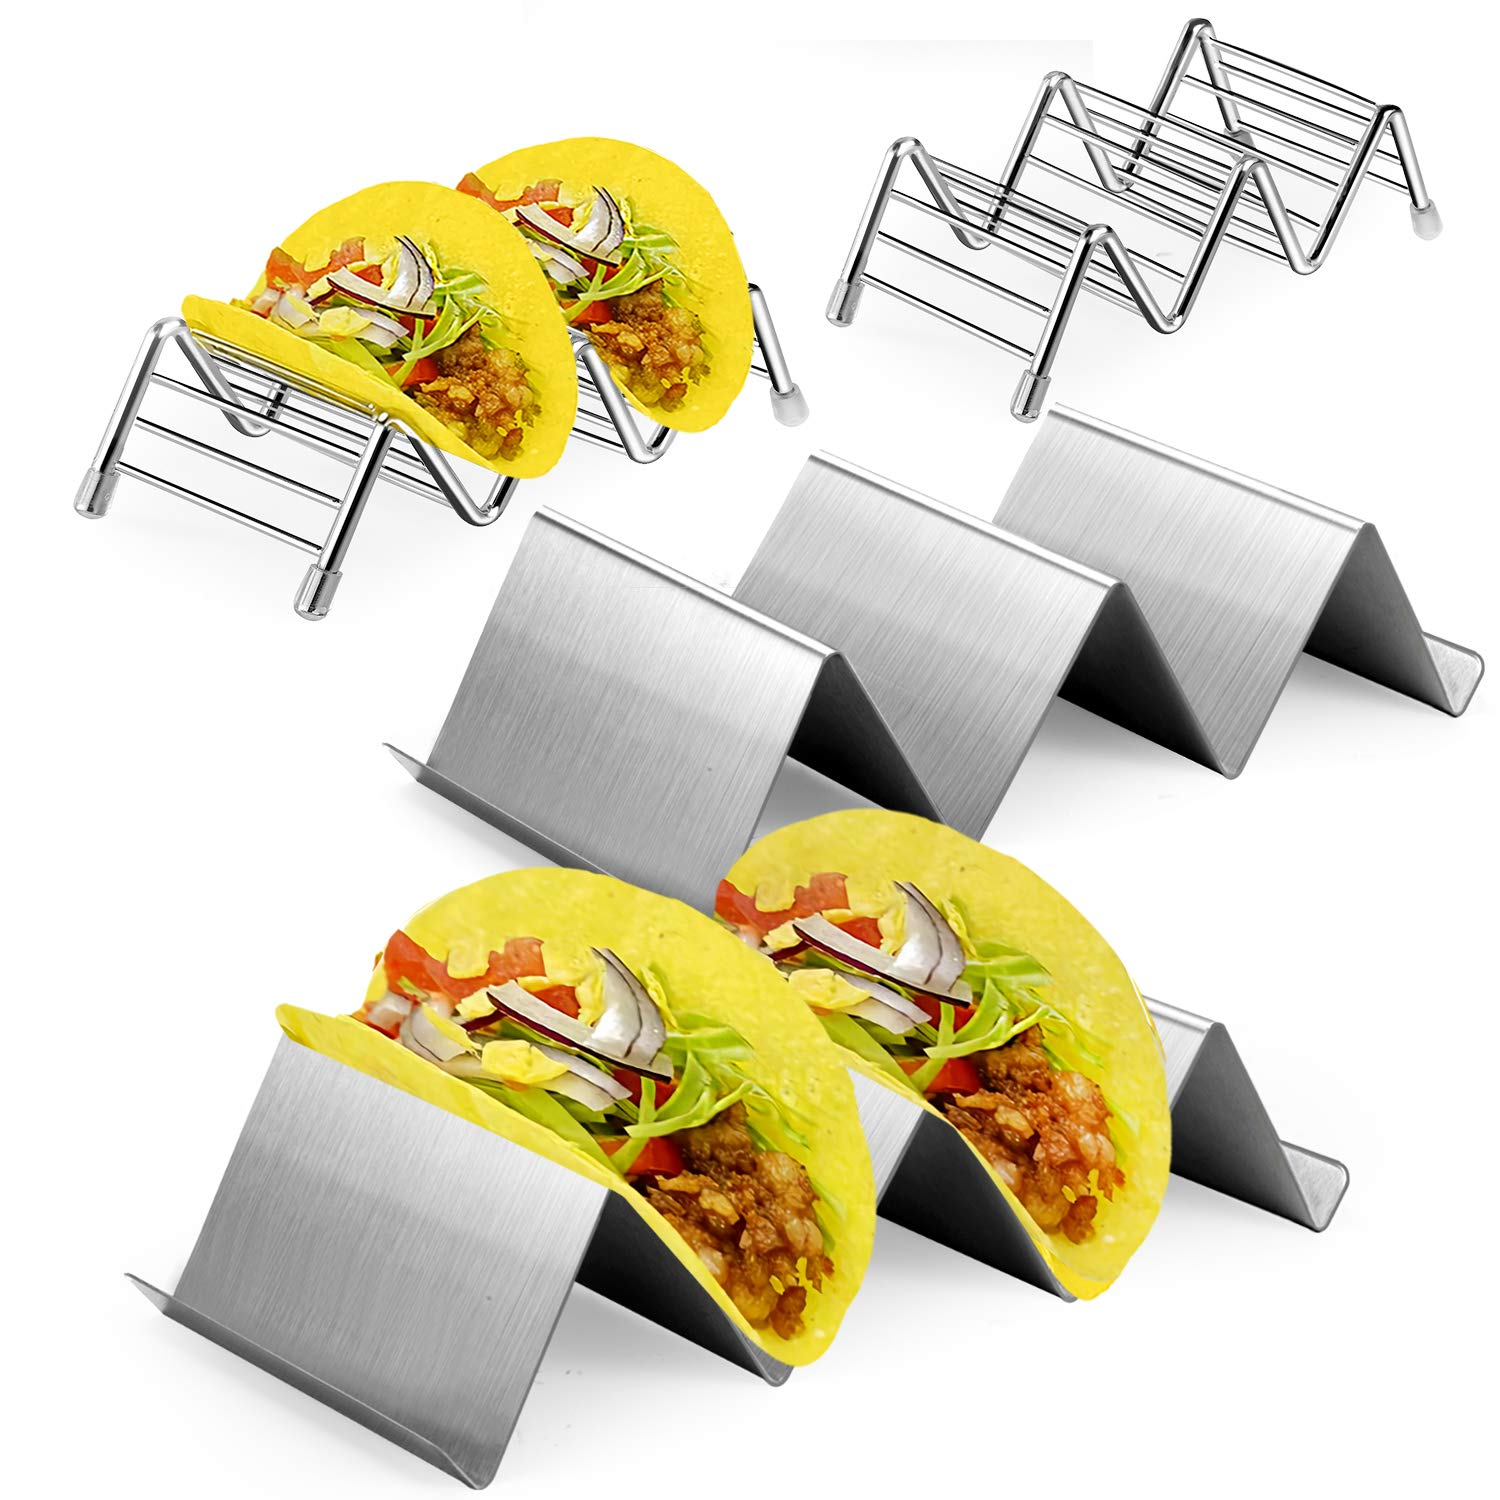 4 Pack Taco Holder, HabiLife Taco Stand Stainless Steel Holds Up to 2 or 3 Tacos or Soft Taco Shells Taco Rack Hard Wave Shape Taco holders